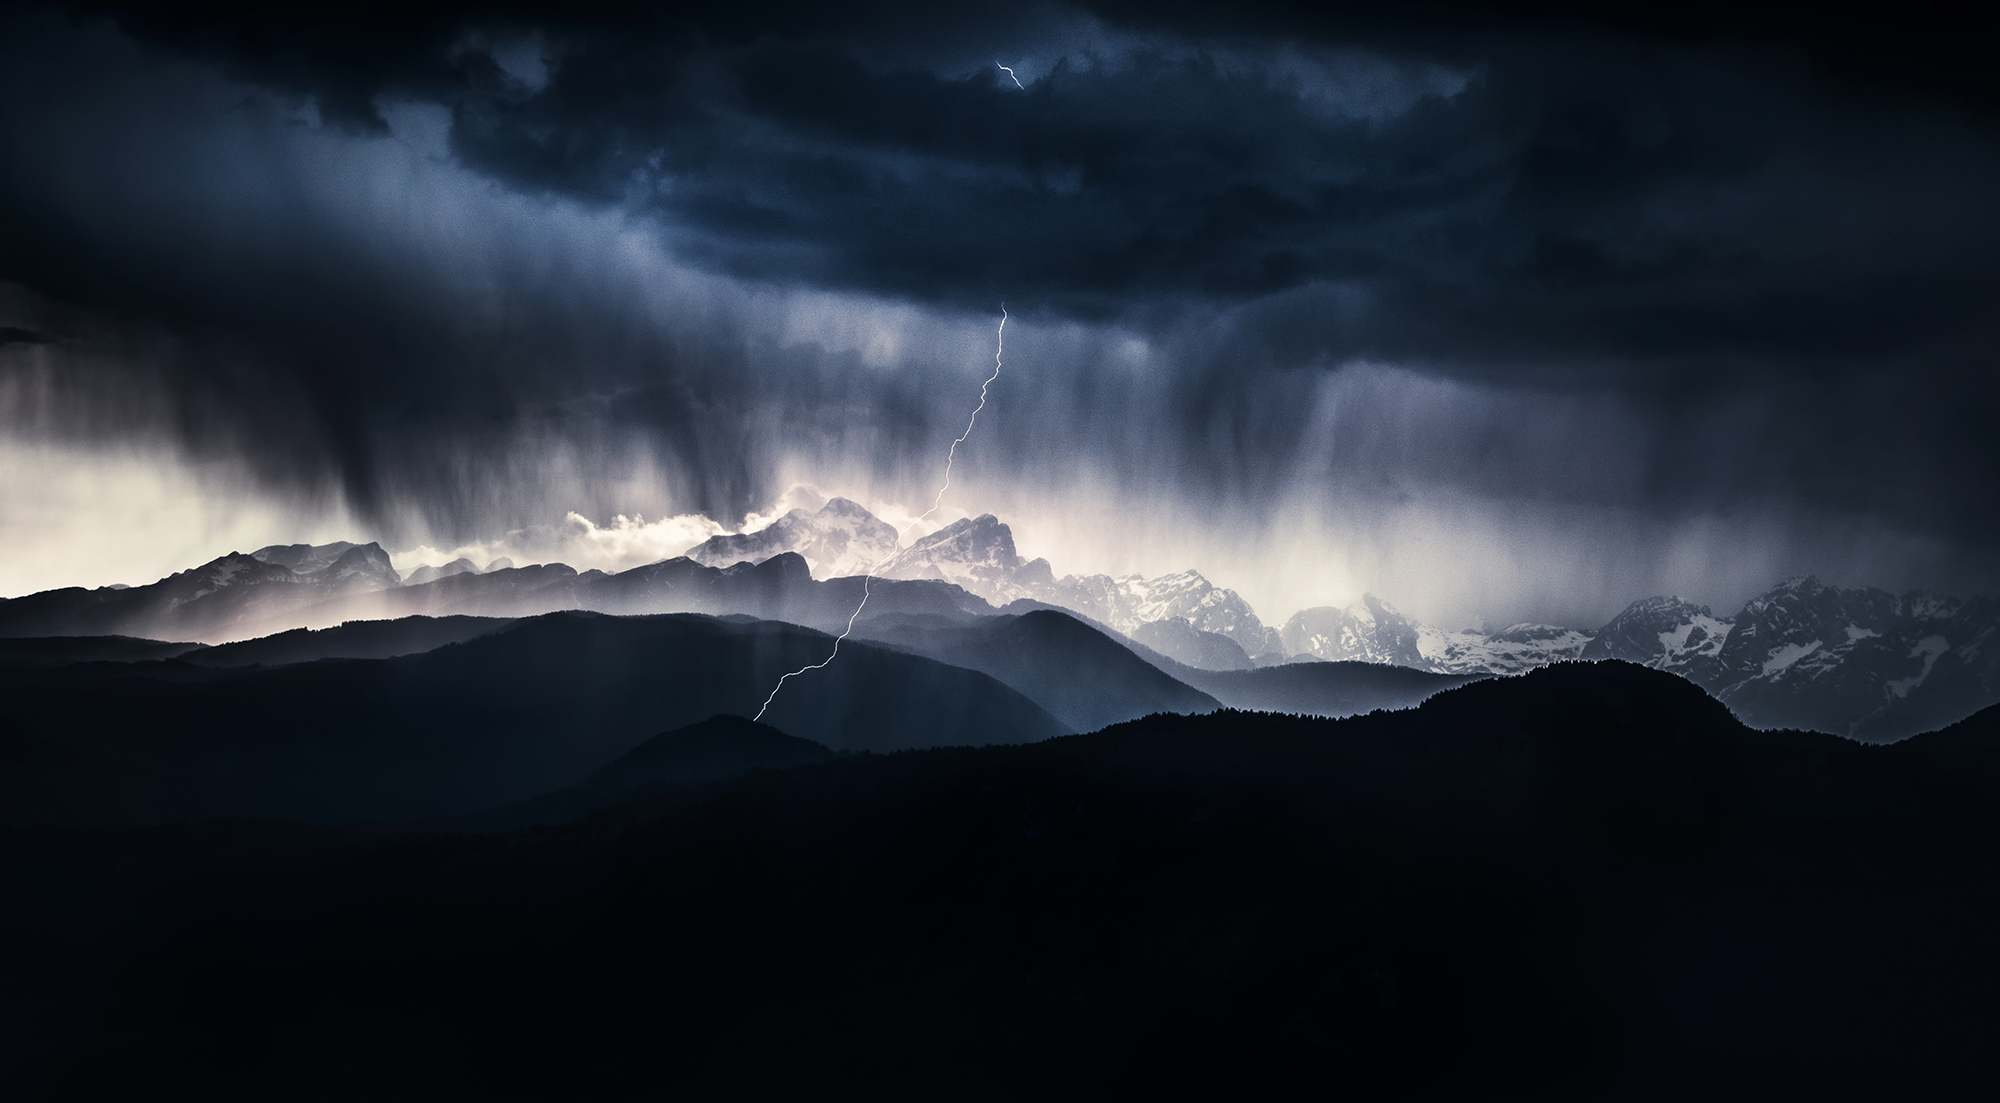 Drama in the mountains...